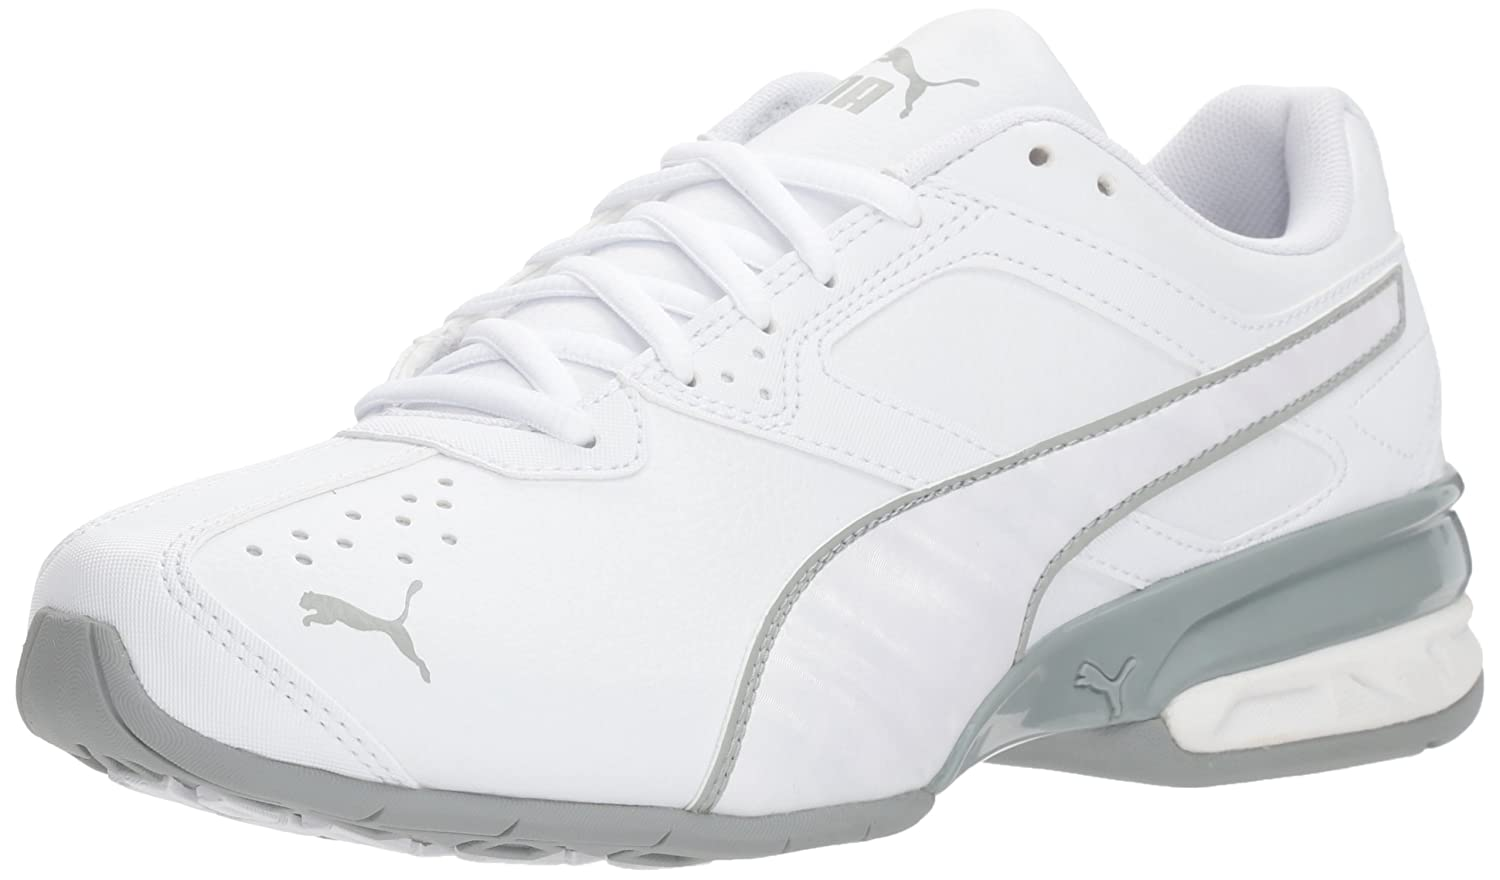 Puma White-quarry PUMA Womens Tazon 6 IRI Wn Sneaker